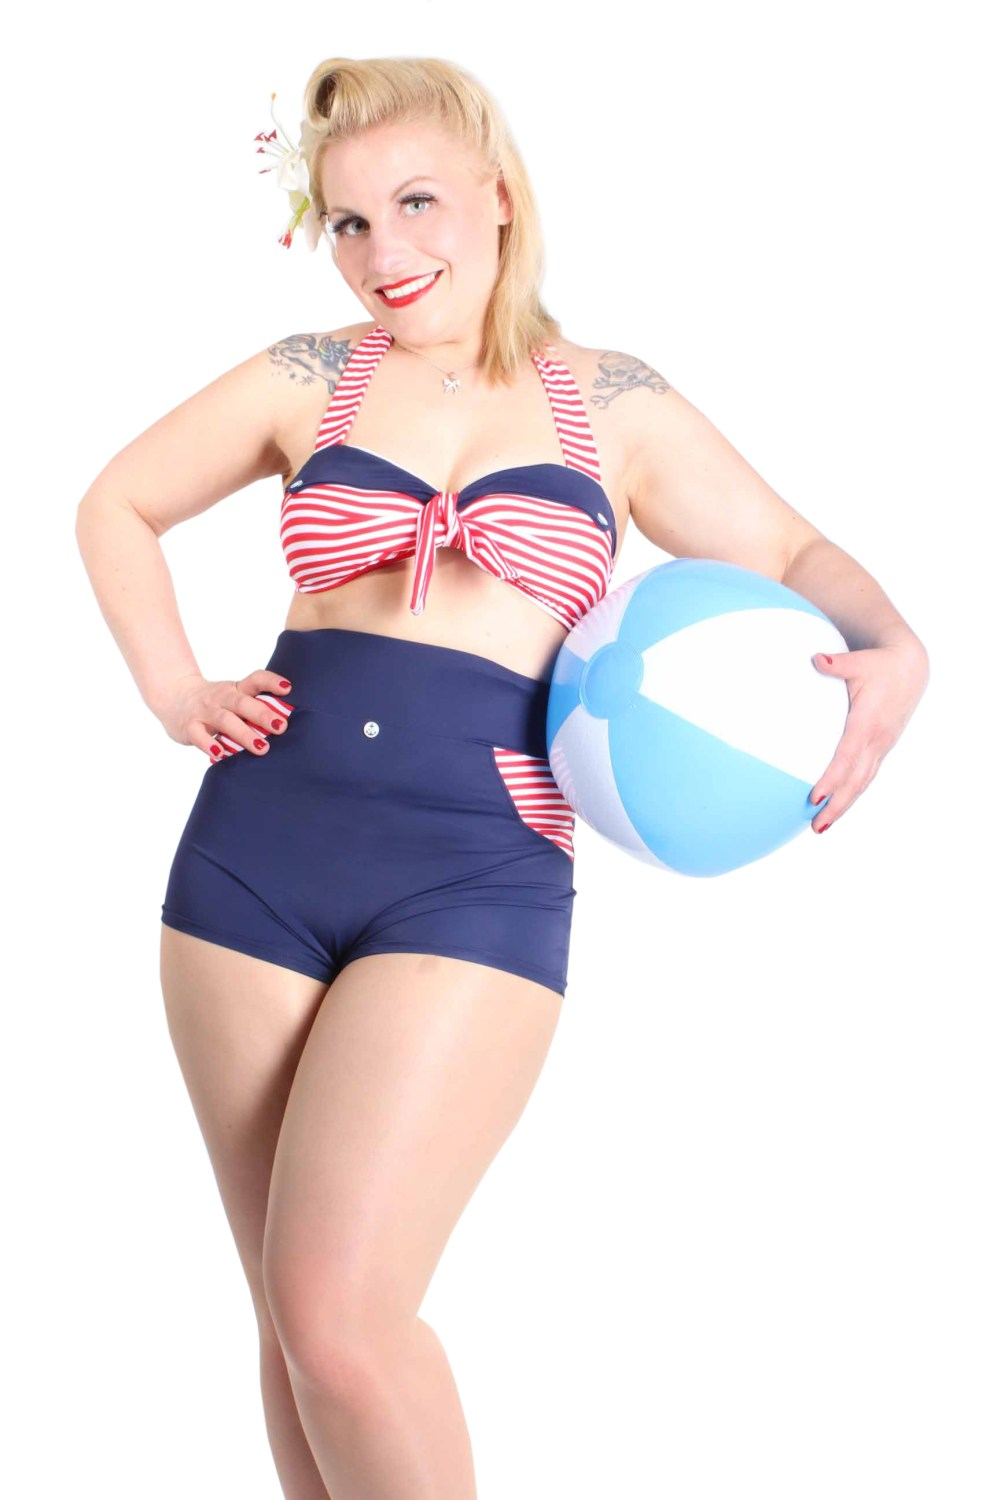 Uniform Sailor STREIFEN pin up Matrose Rockabilly high waist Bikini marineblau